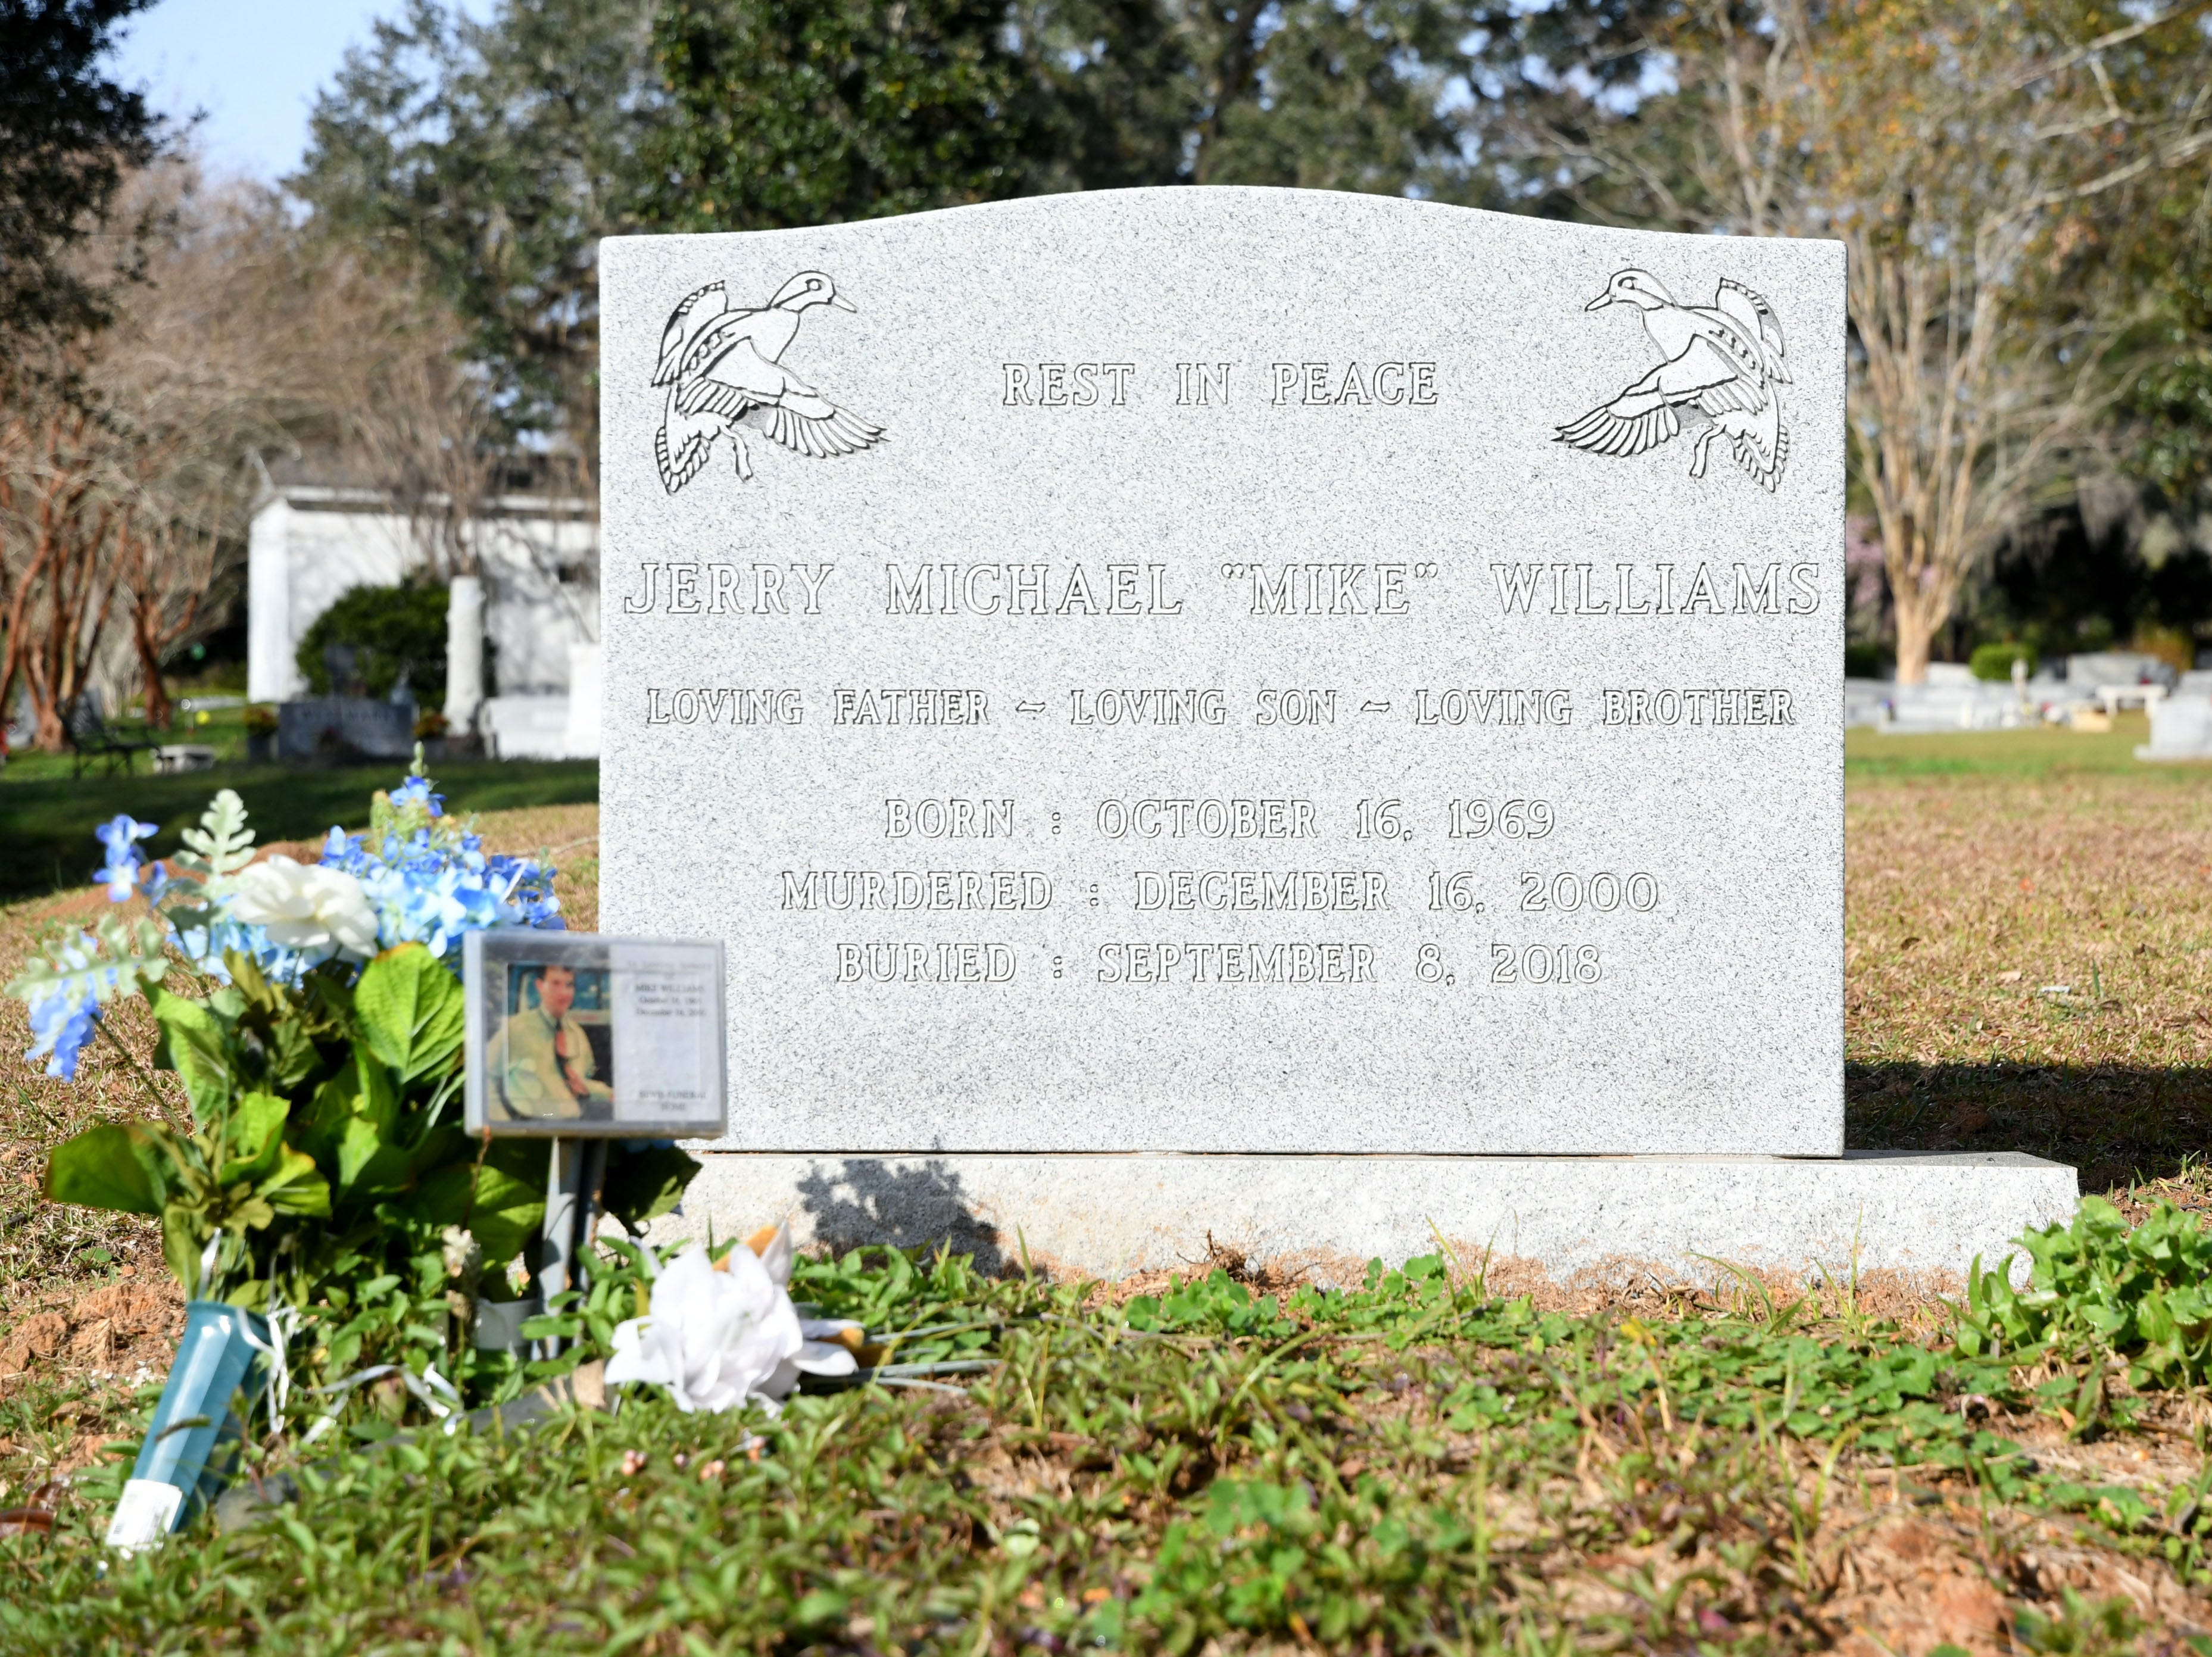 The tombstone at the grave of Mike Williams, the man who was murdered over 18 years ago by his wife and best friend. Denise Williams, Mike's wife, was sentenced to life in prison plus 30 years, Wednesday Feb. 6, 2019.